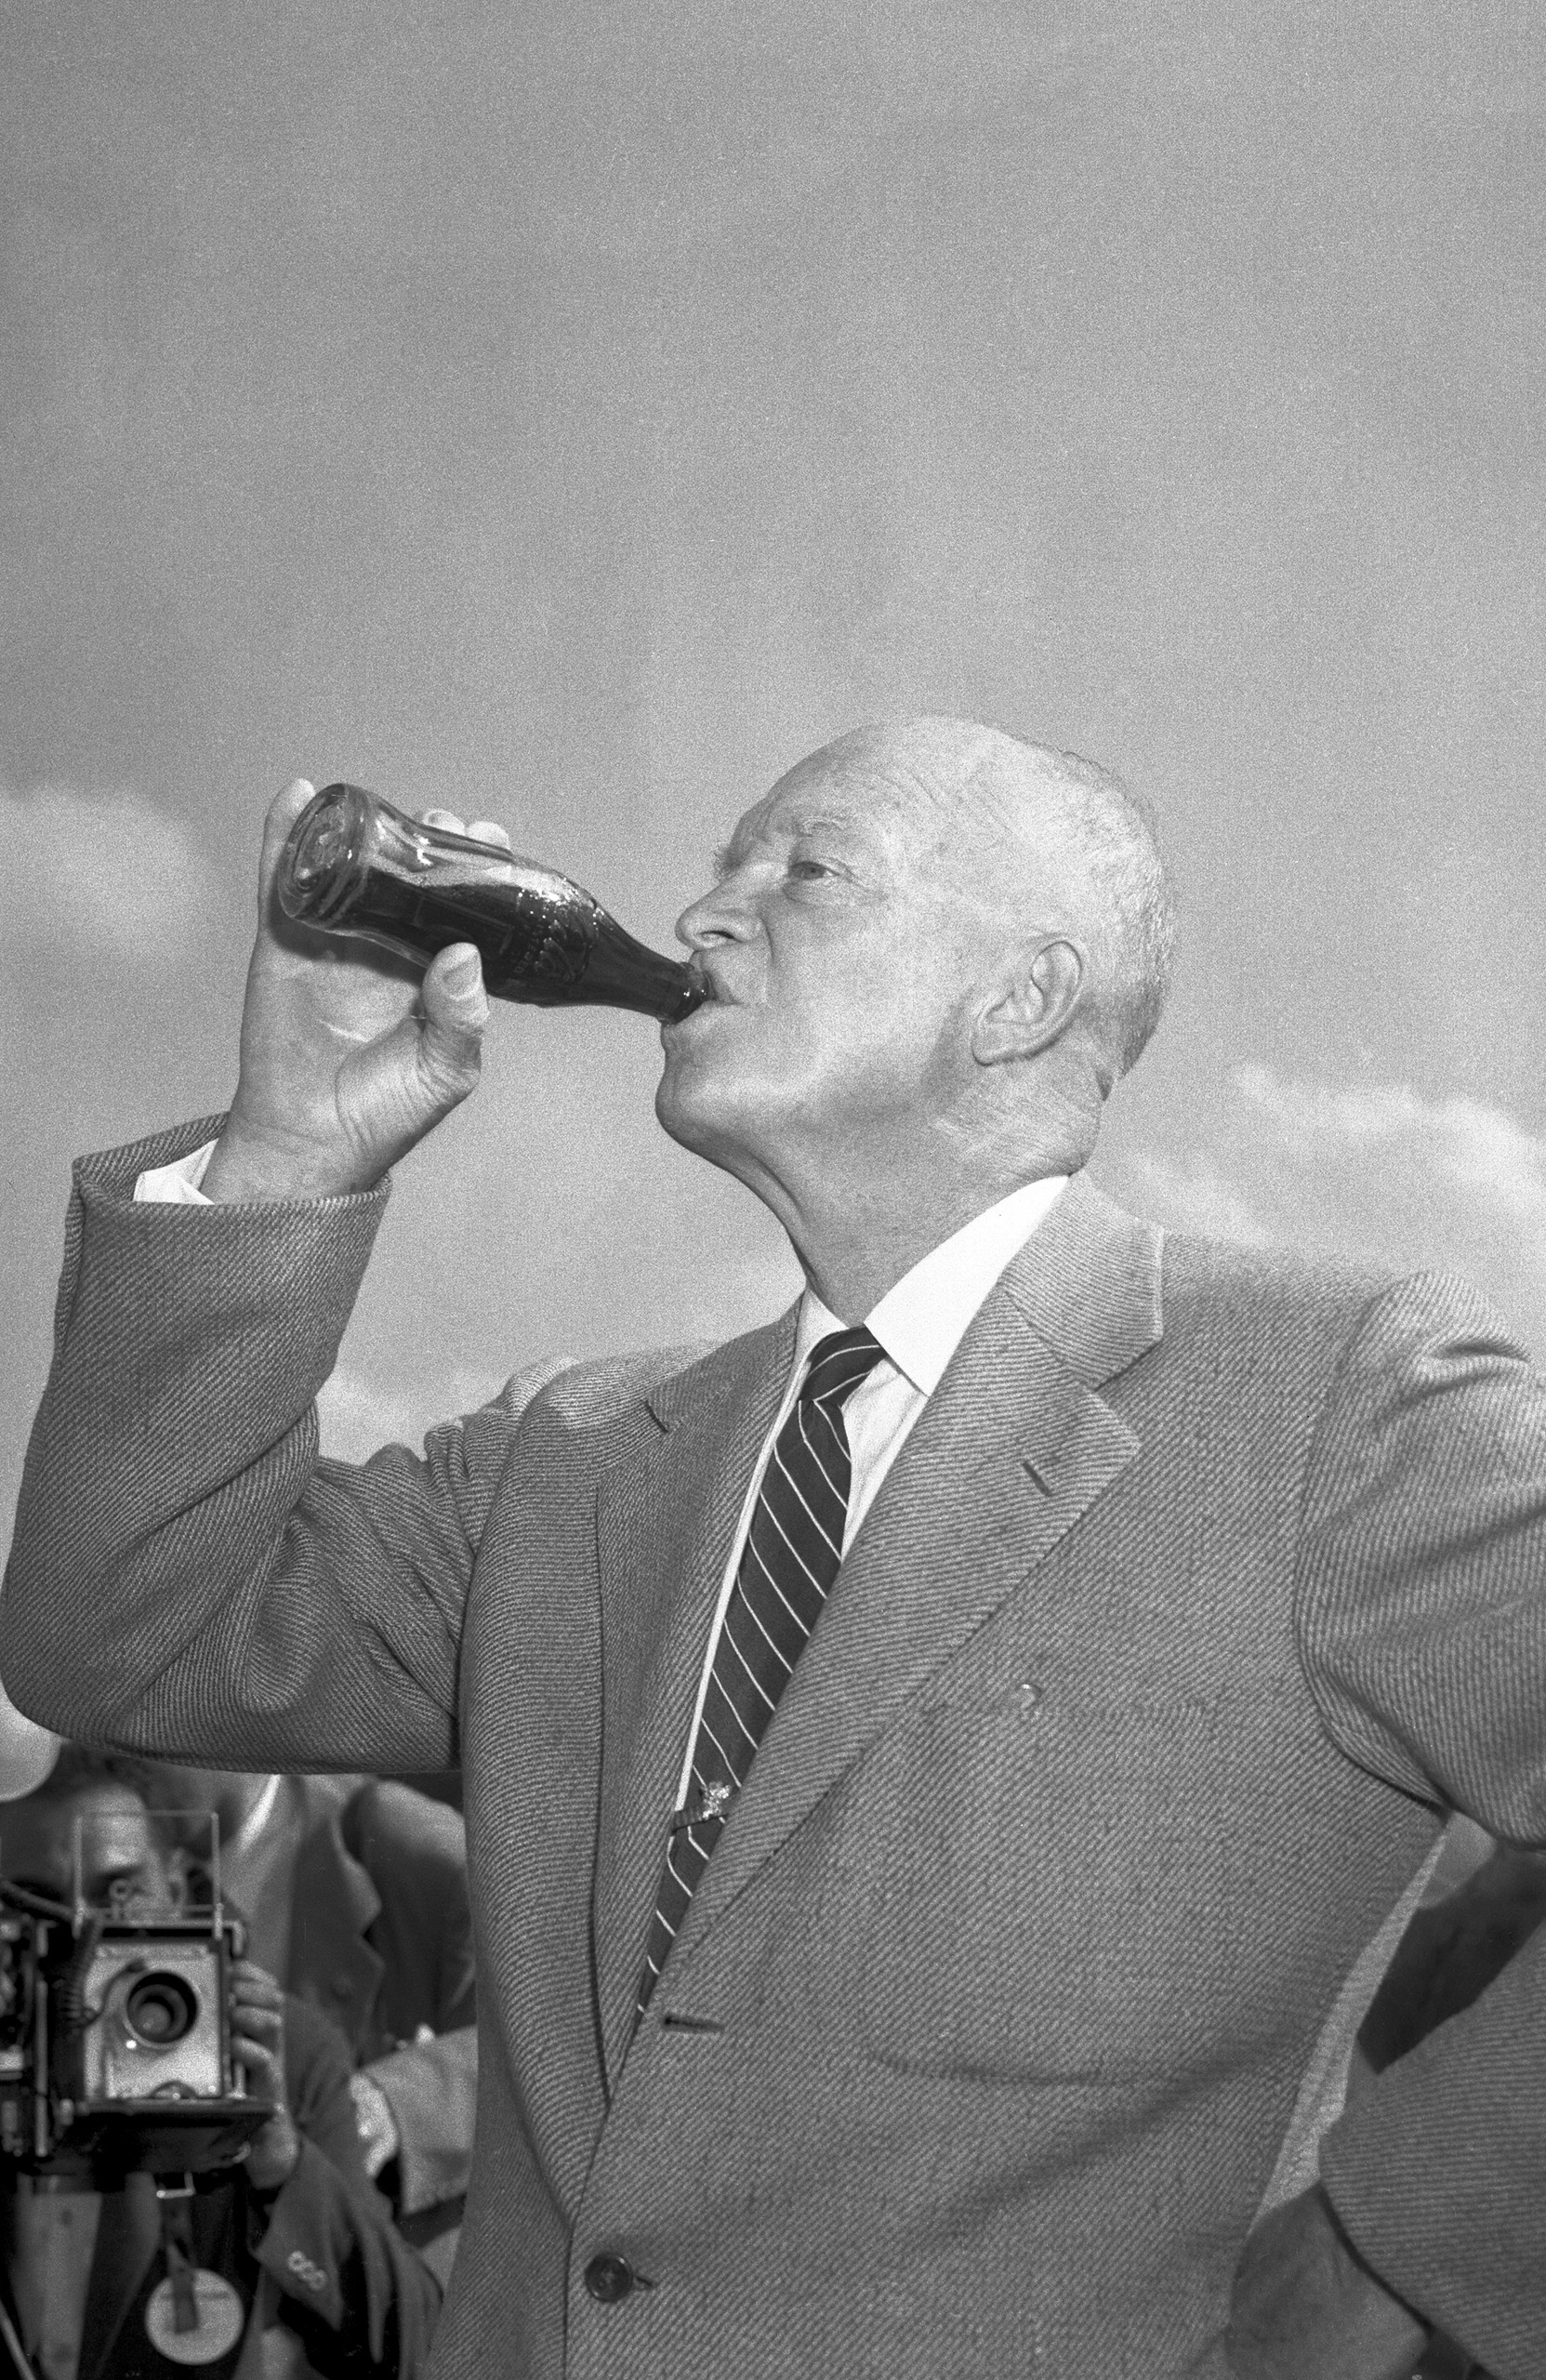 President Eisenhower drinks soda from a bottle during the big Republican rally at his Gettysburg farm, which was the kickoff of his campaign for re-election. Sept. 13, 1956.